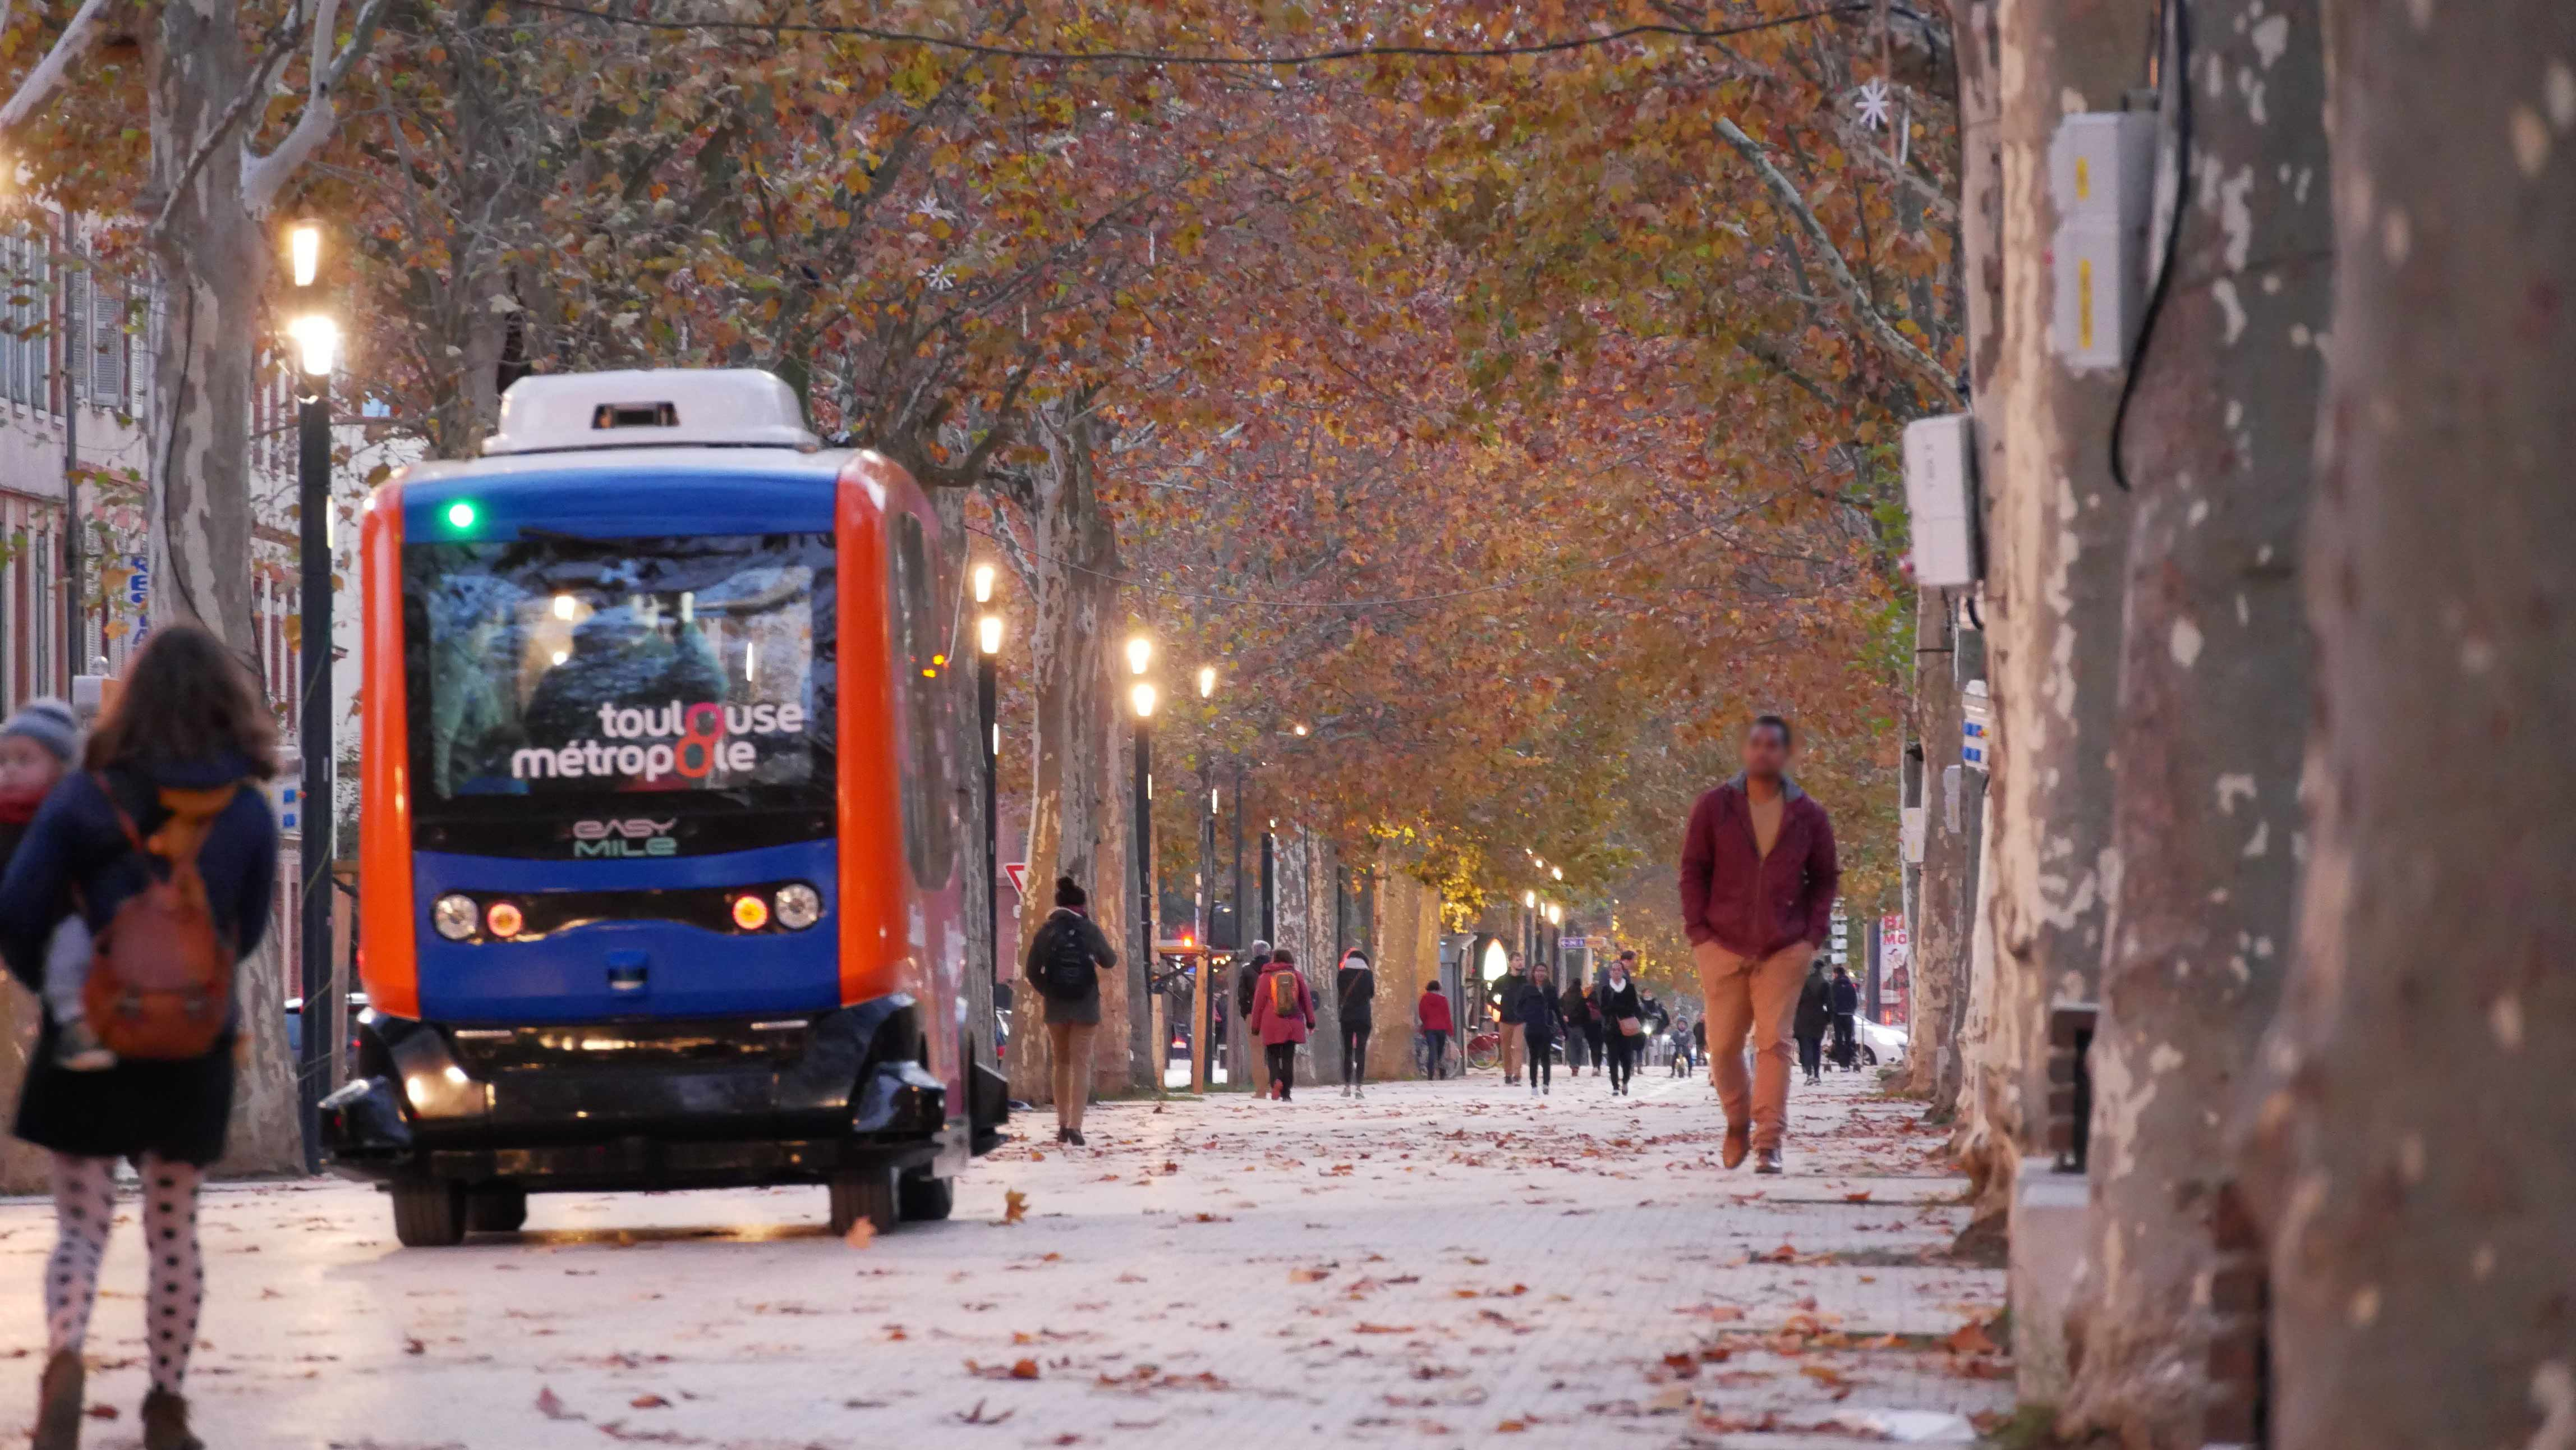 Toulouse's driverless autonomous shuttle was created by a local start-up. Image credit - ©EasyMile